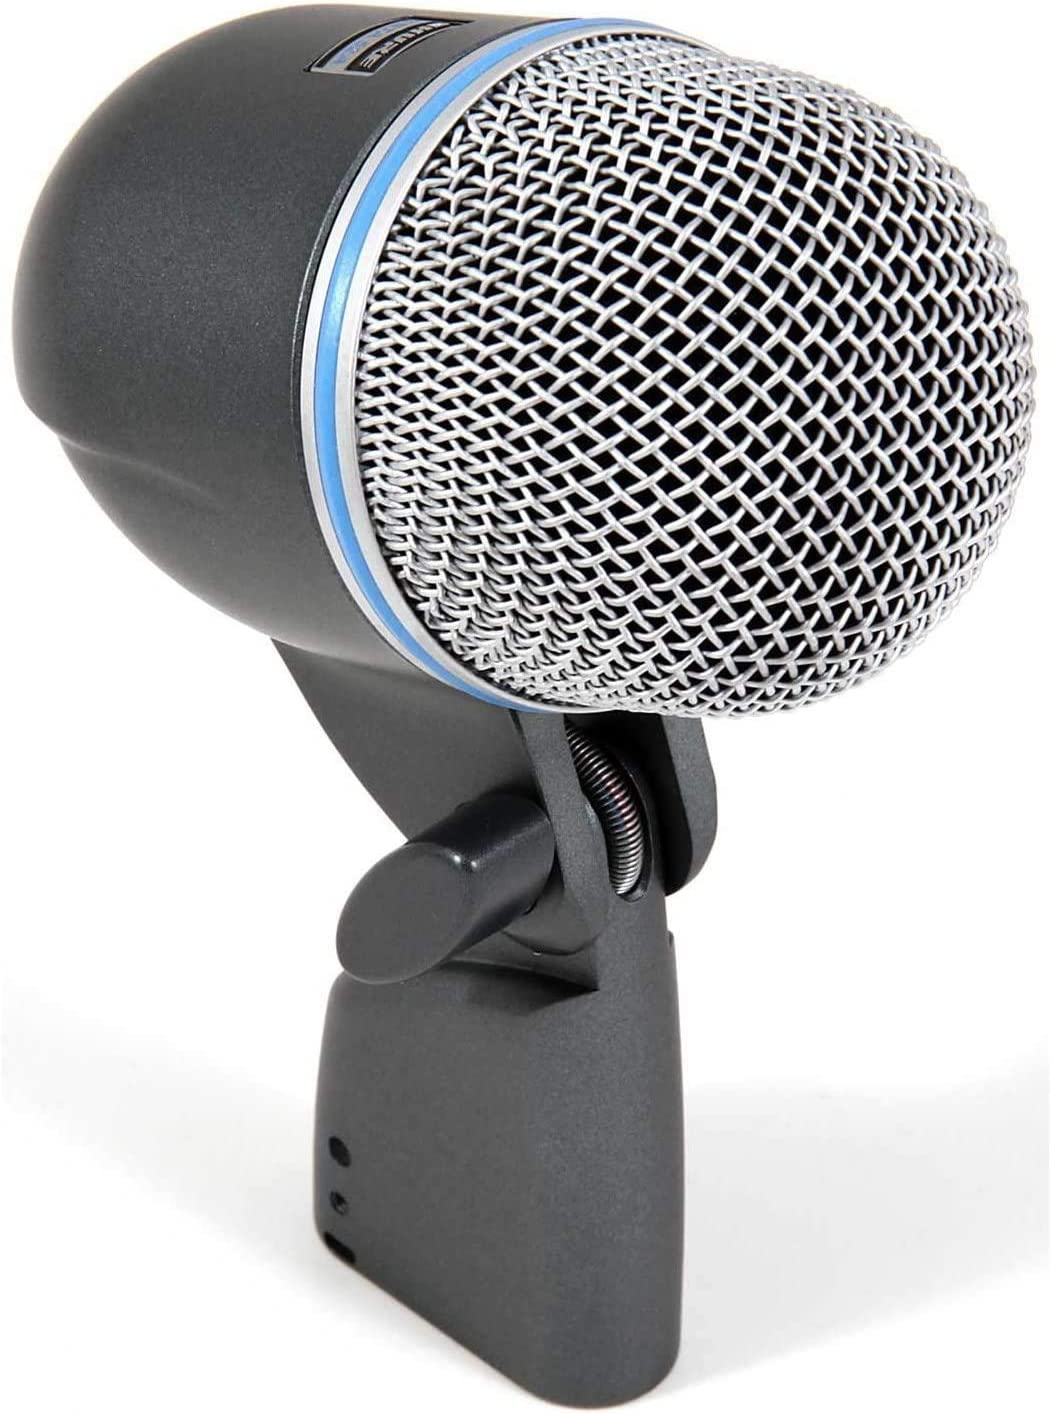 Shure BETA 52A Supercardioid Dynamic Kick Drum Microphone with High Output Neodymium Element: Musical Instruments